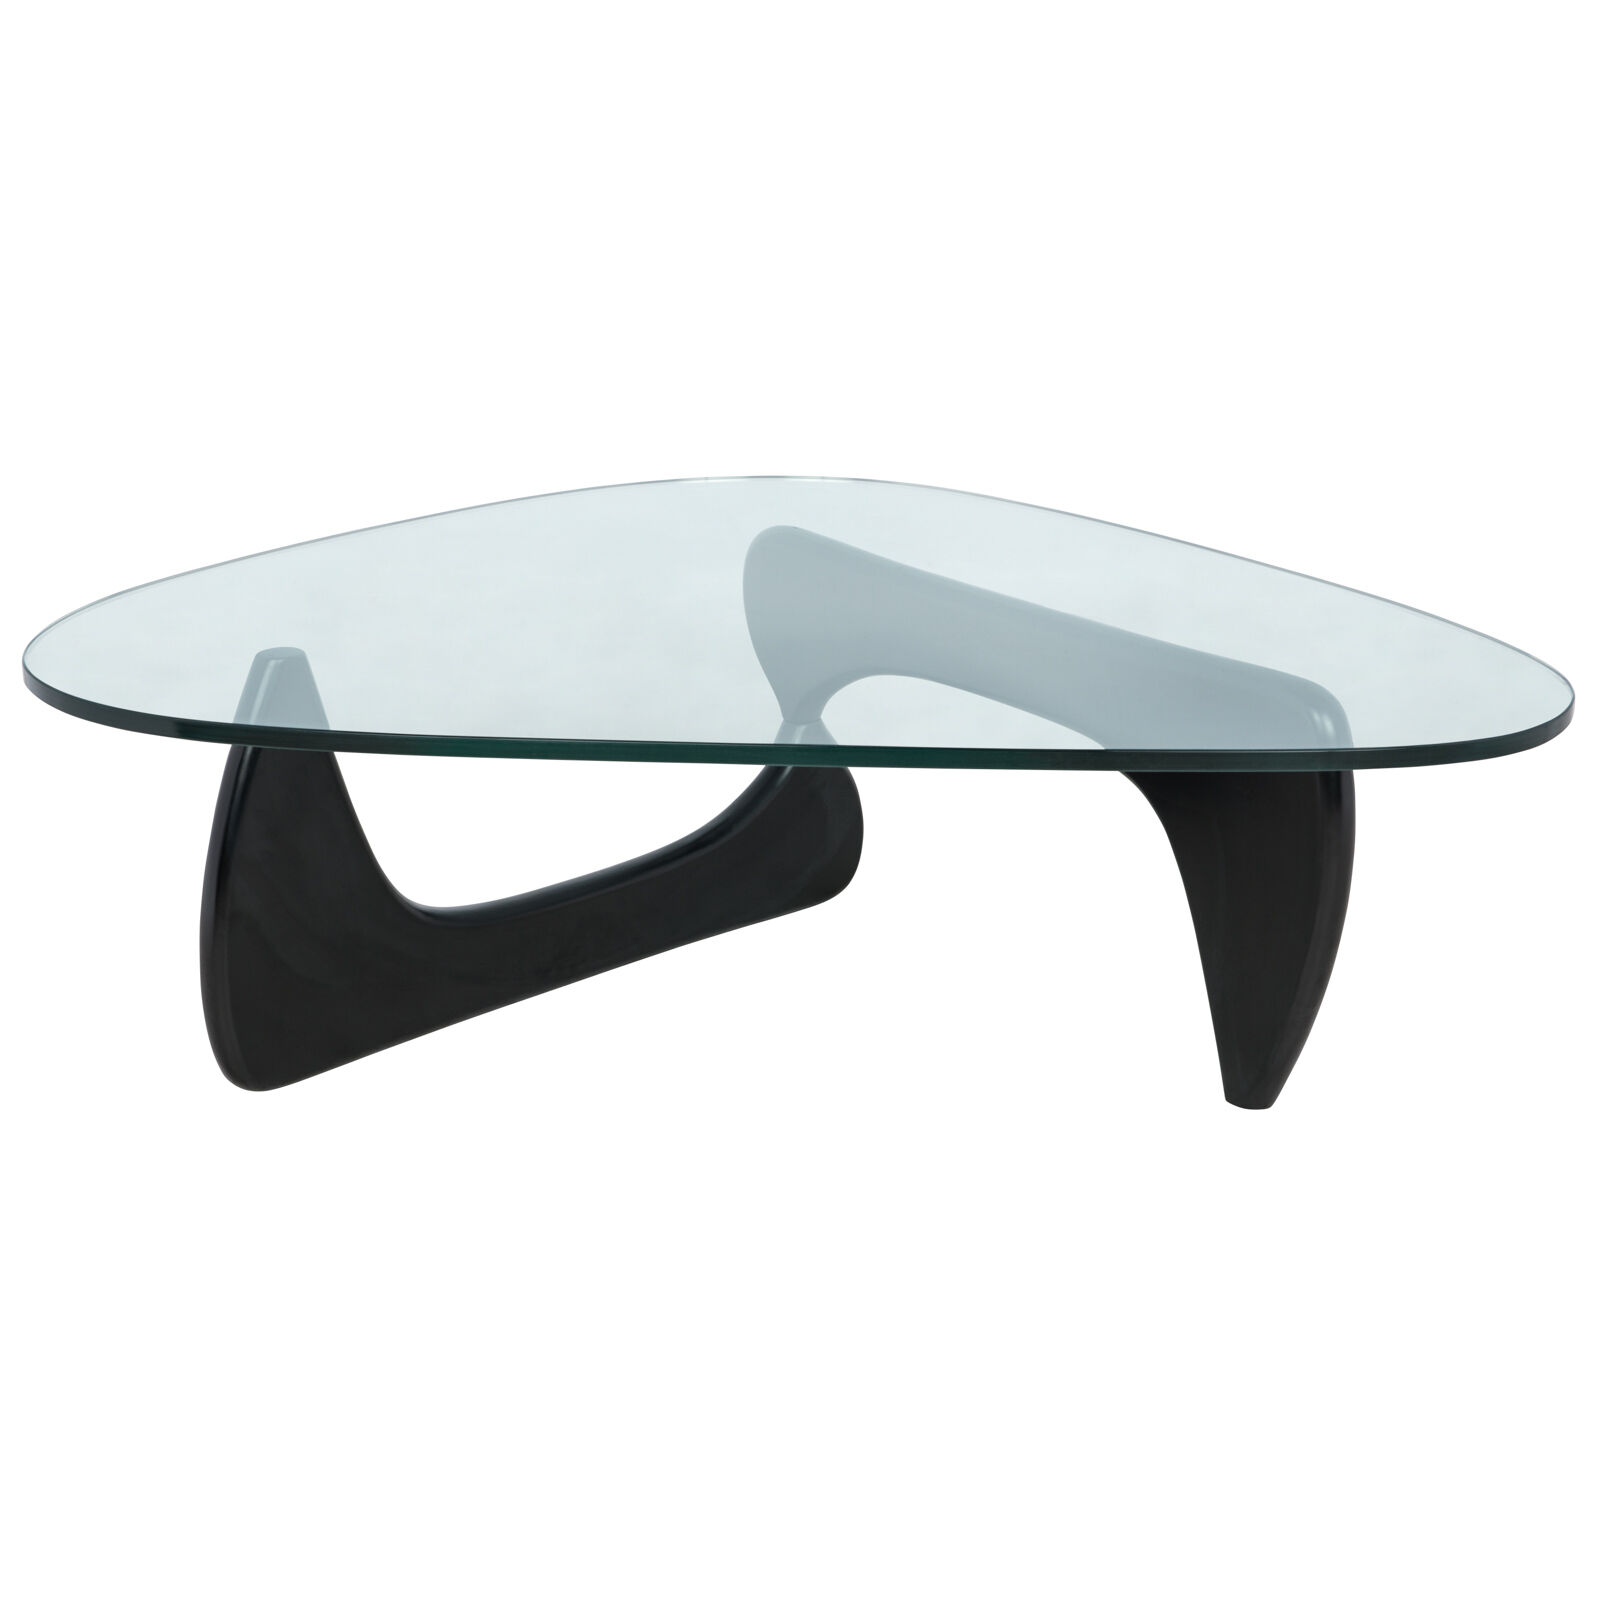 Isamu Noguchi Style Triangle Coffee Table With Black Wood